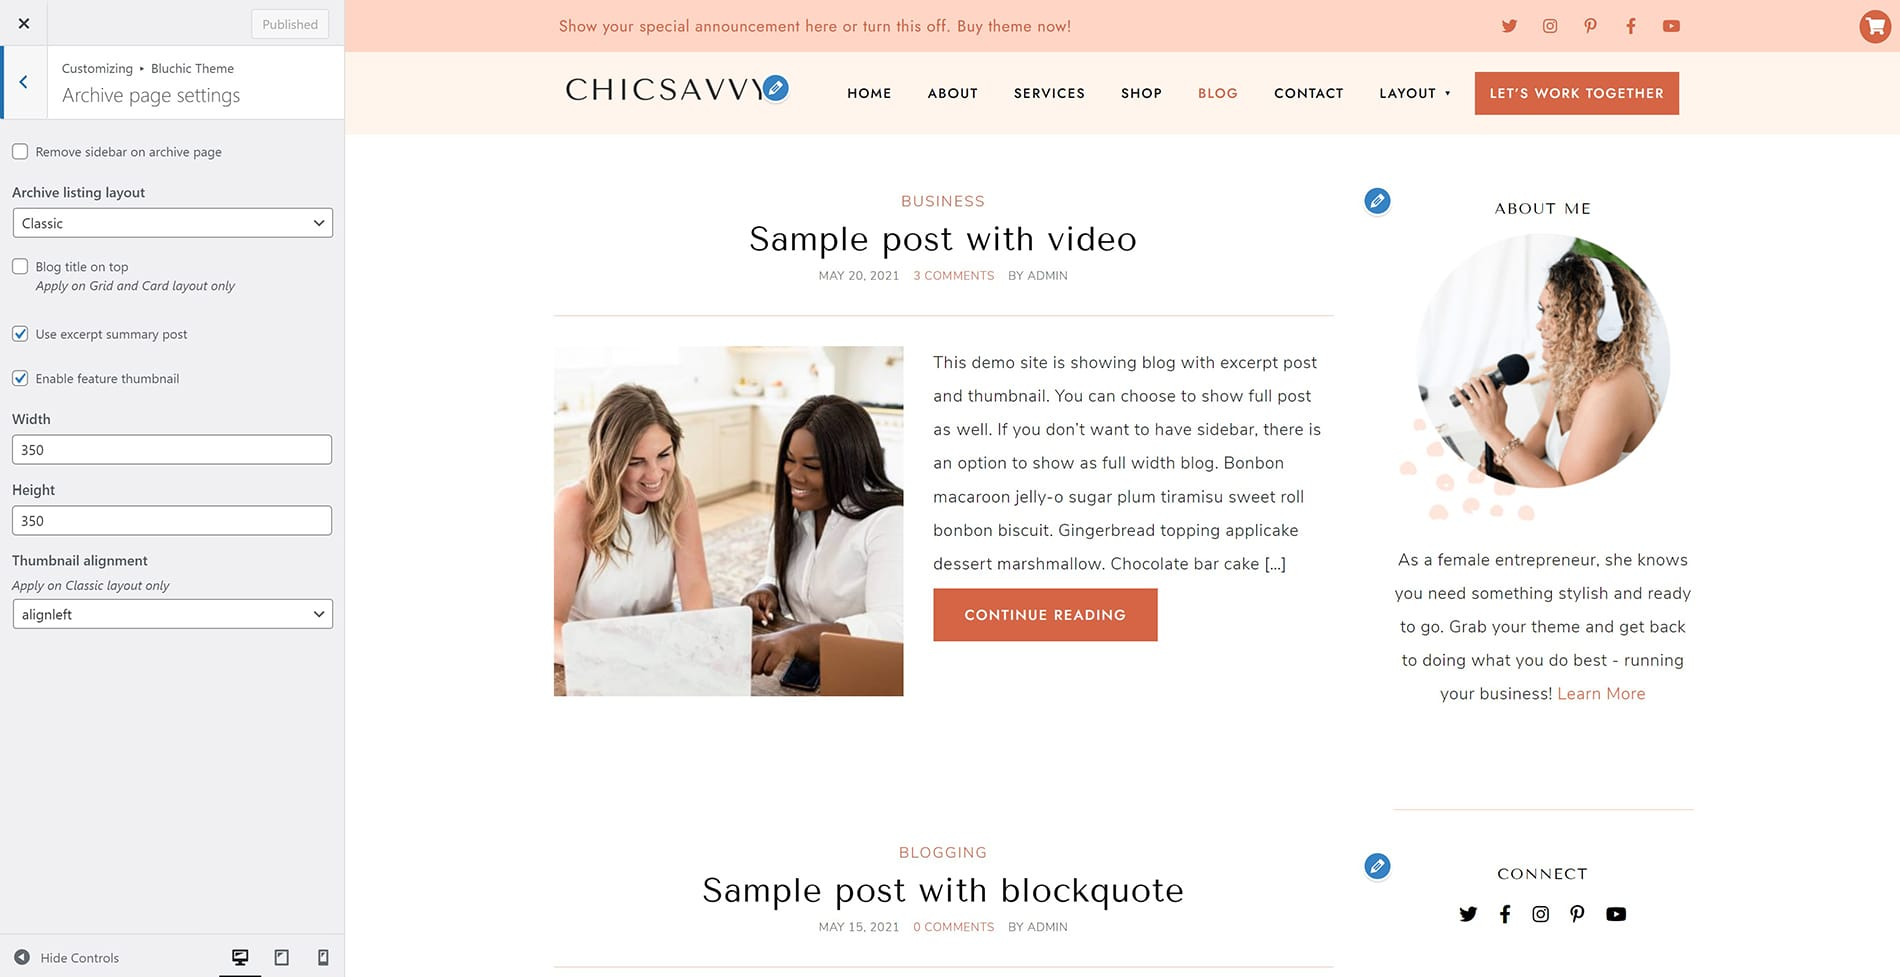 ChicSavvy archive page settings